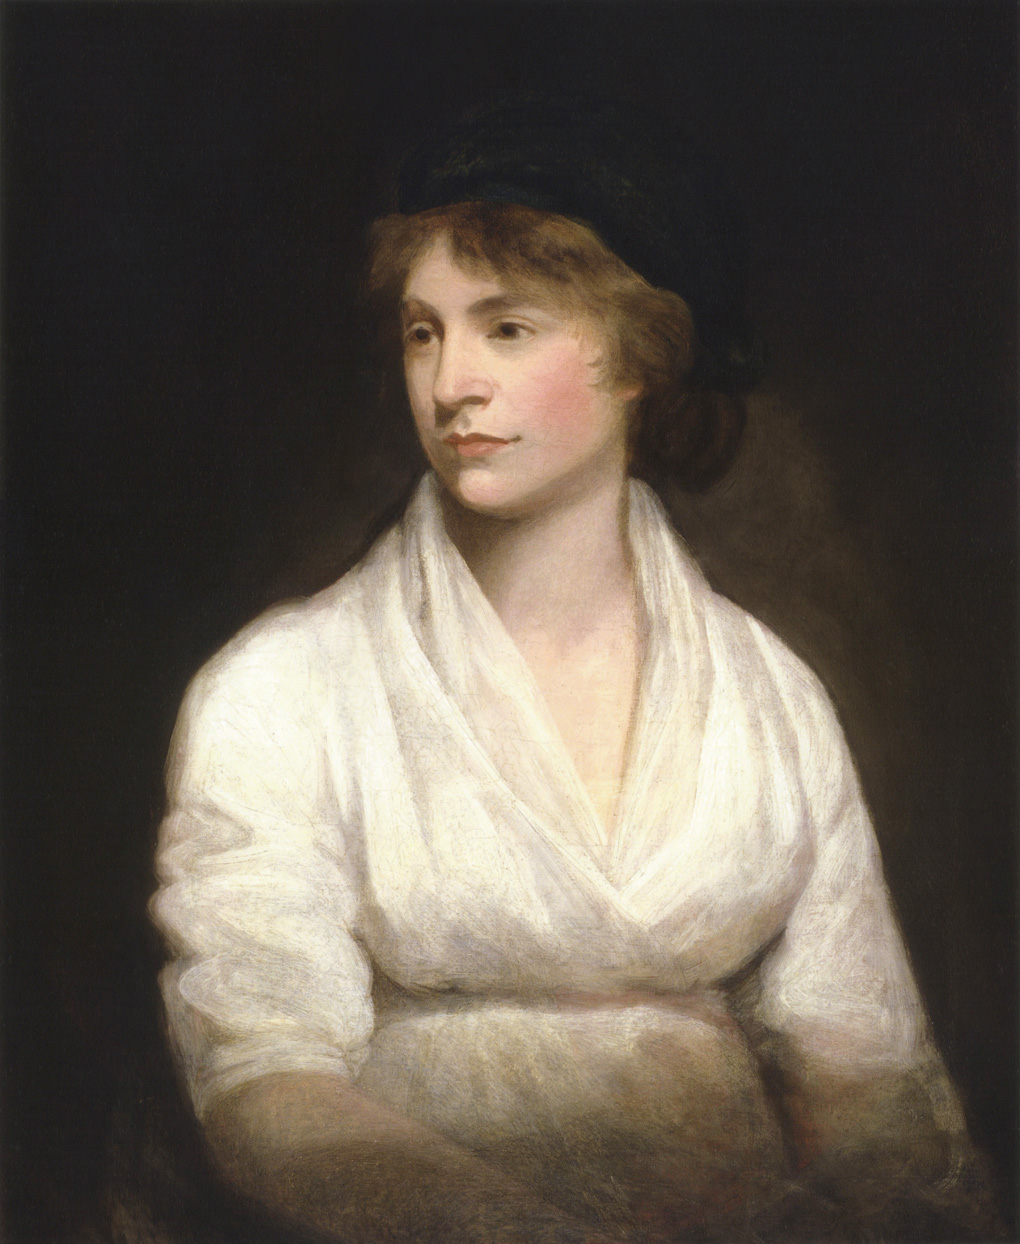 frankenstein the effects of isolation and rejection writework writing in the 18th century mary wollstonecraft is often hailed as the founder of liberal